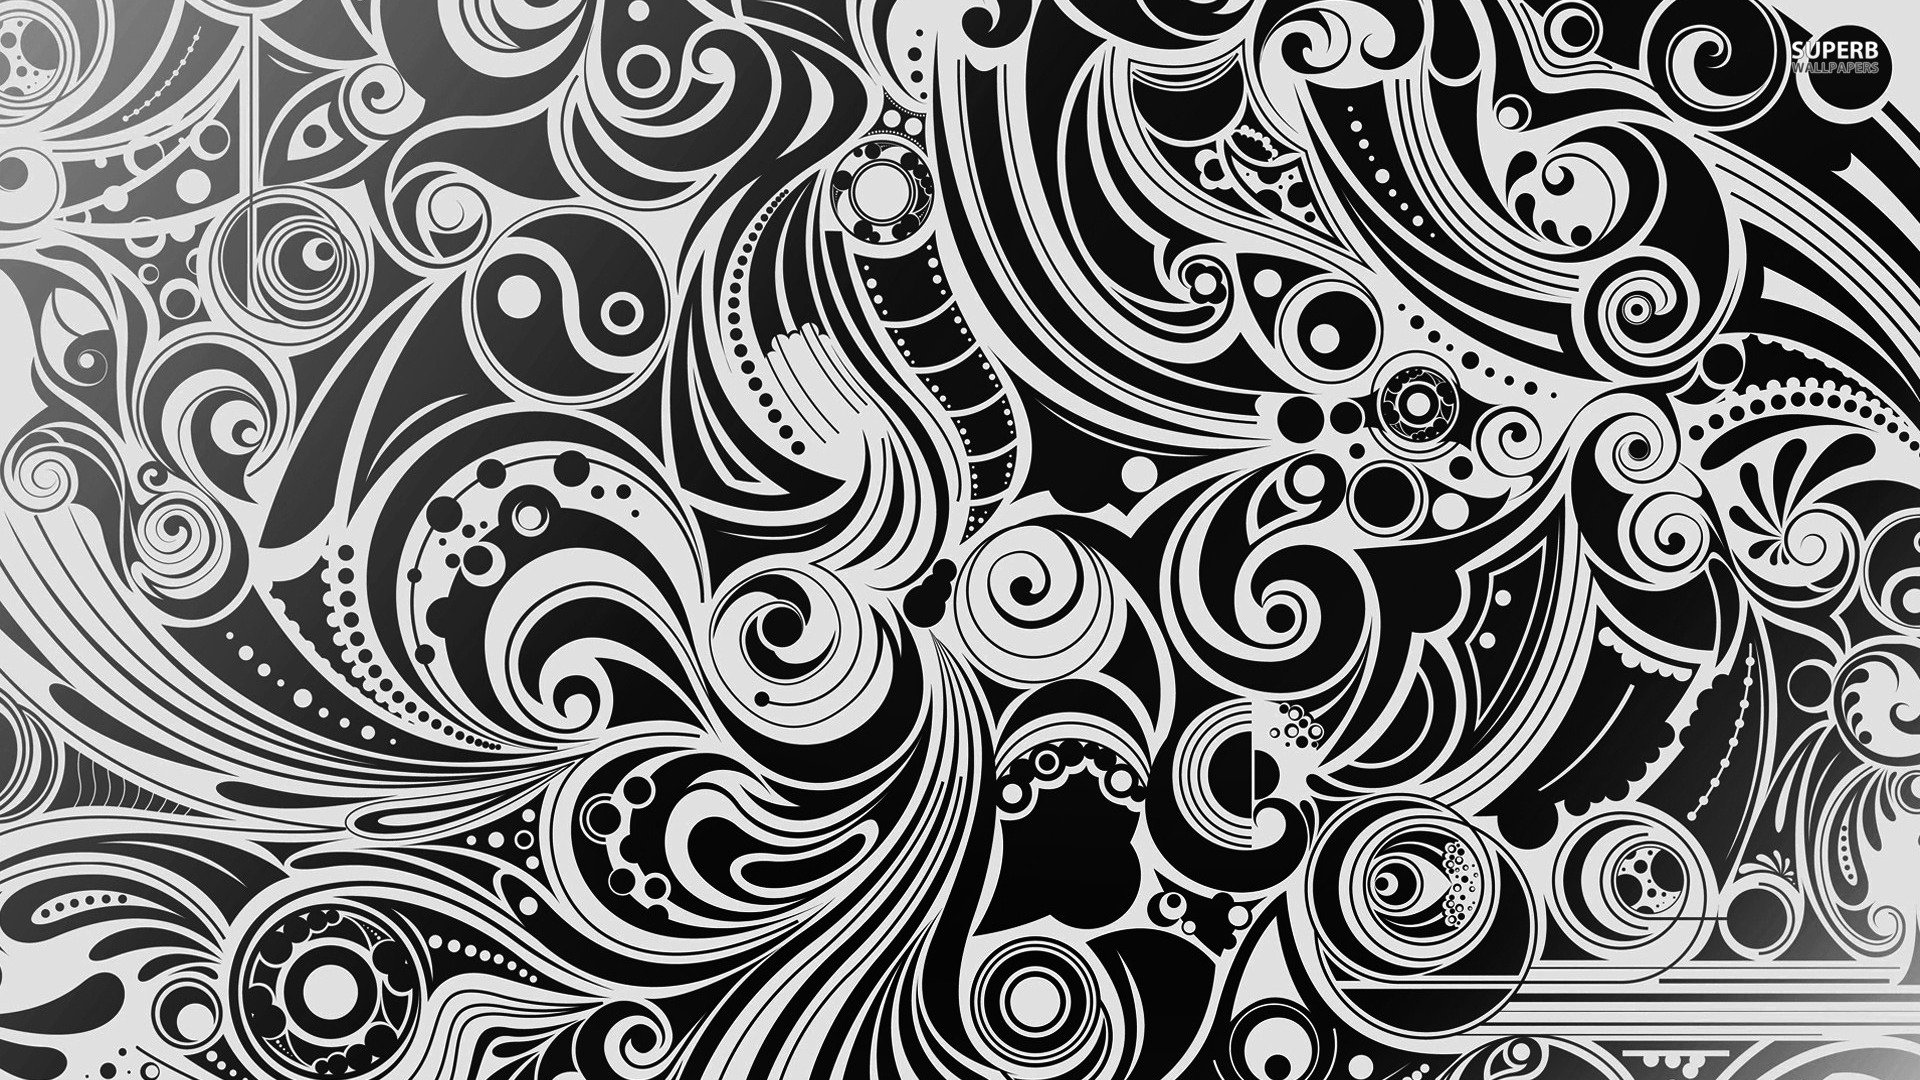 Black and White Designs Art New Abstract Art Black and Whit Hd Wallpaper Background